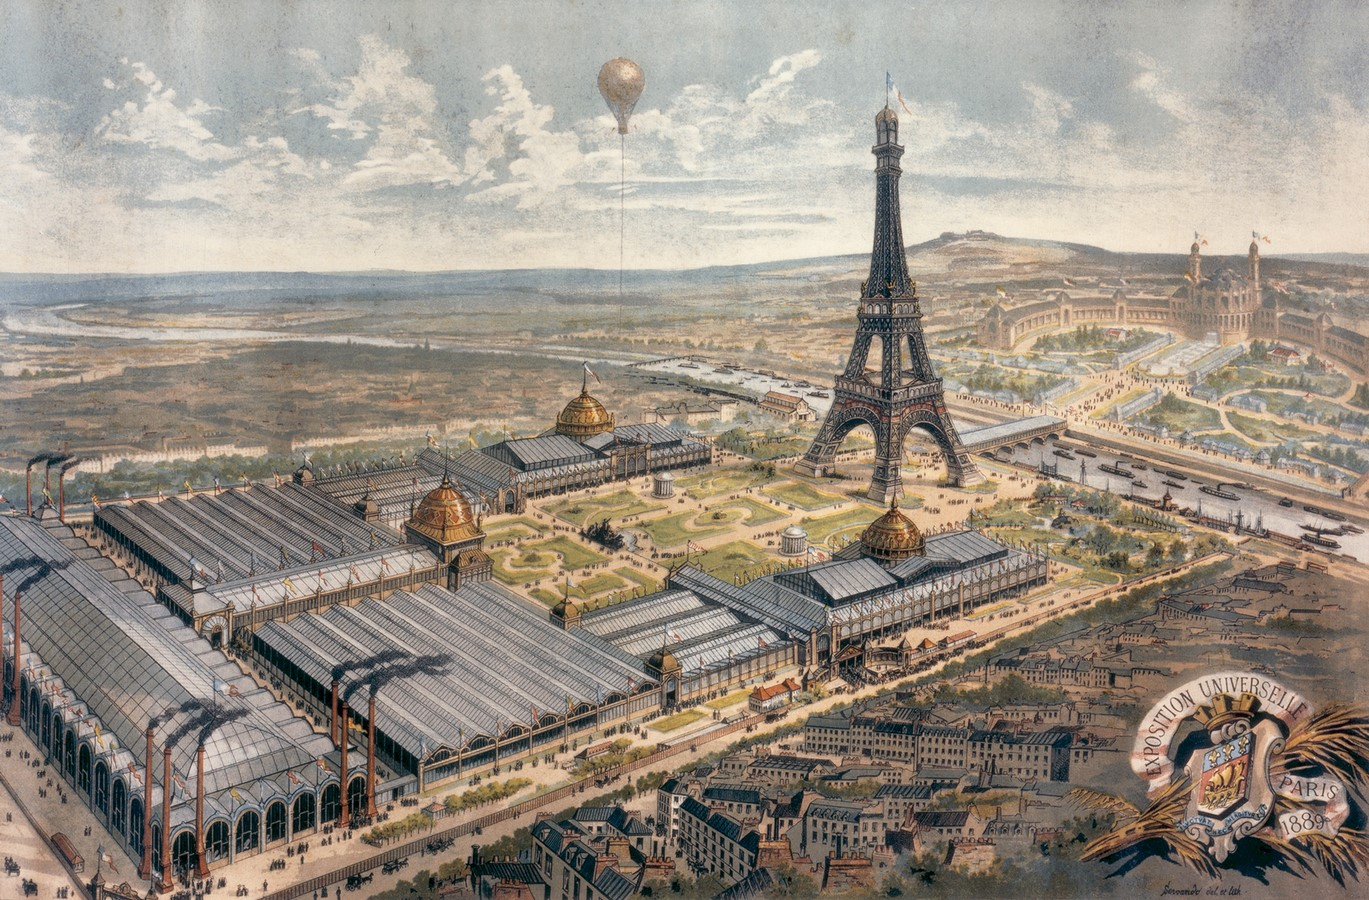 10 Things you did not know about Eiffel Tower - Sheet4